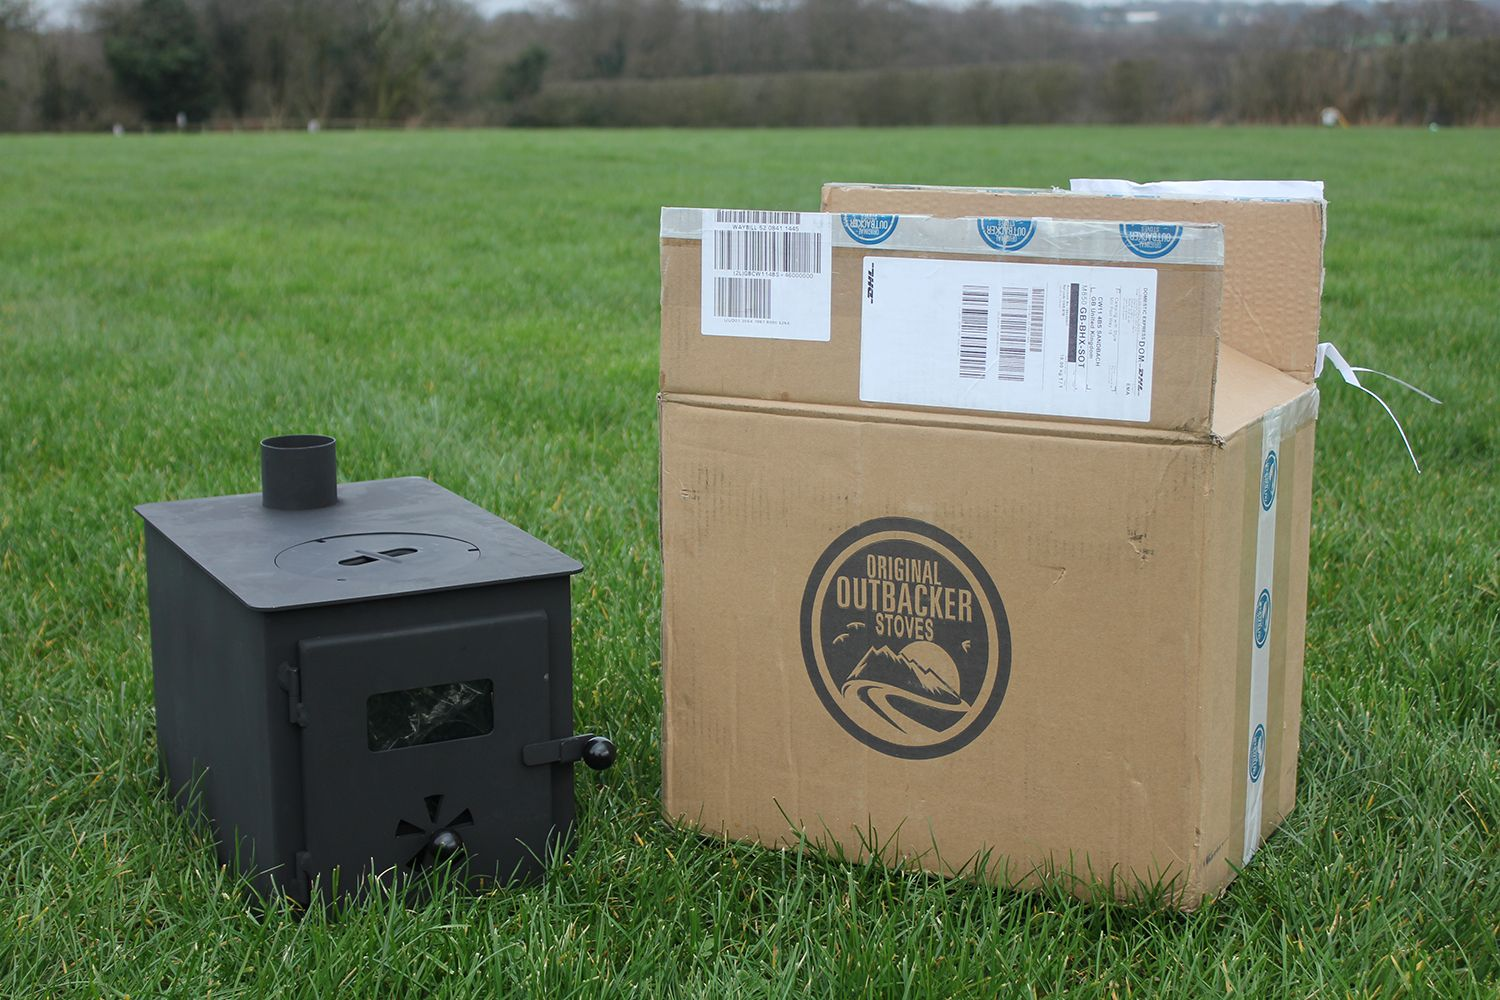 Outbacker Firebox Tent Stove169.99 from Bell Tent BoutiqueBuy it here Features Lightweight portable log & Outbacker Firebox Tent Stove169.99 from Bell Tent BoutiqueBuy it ...